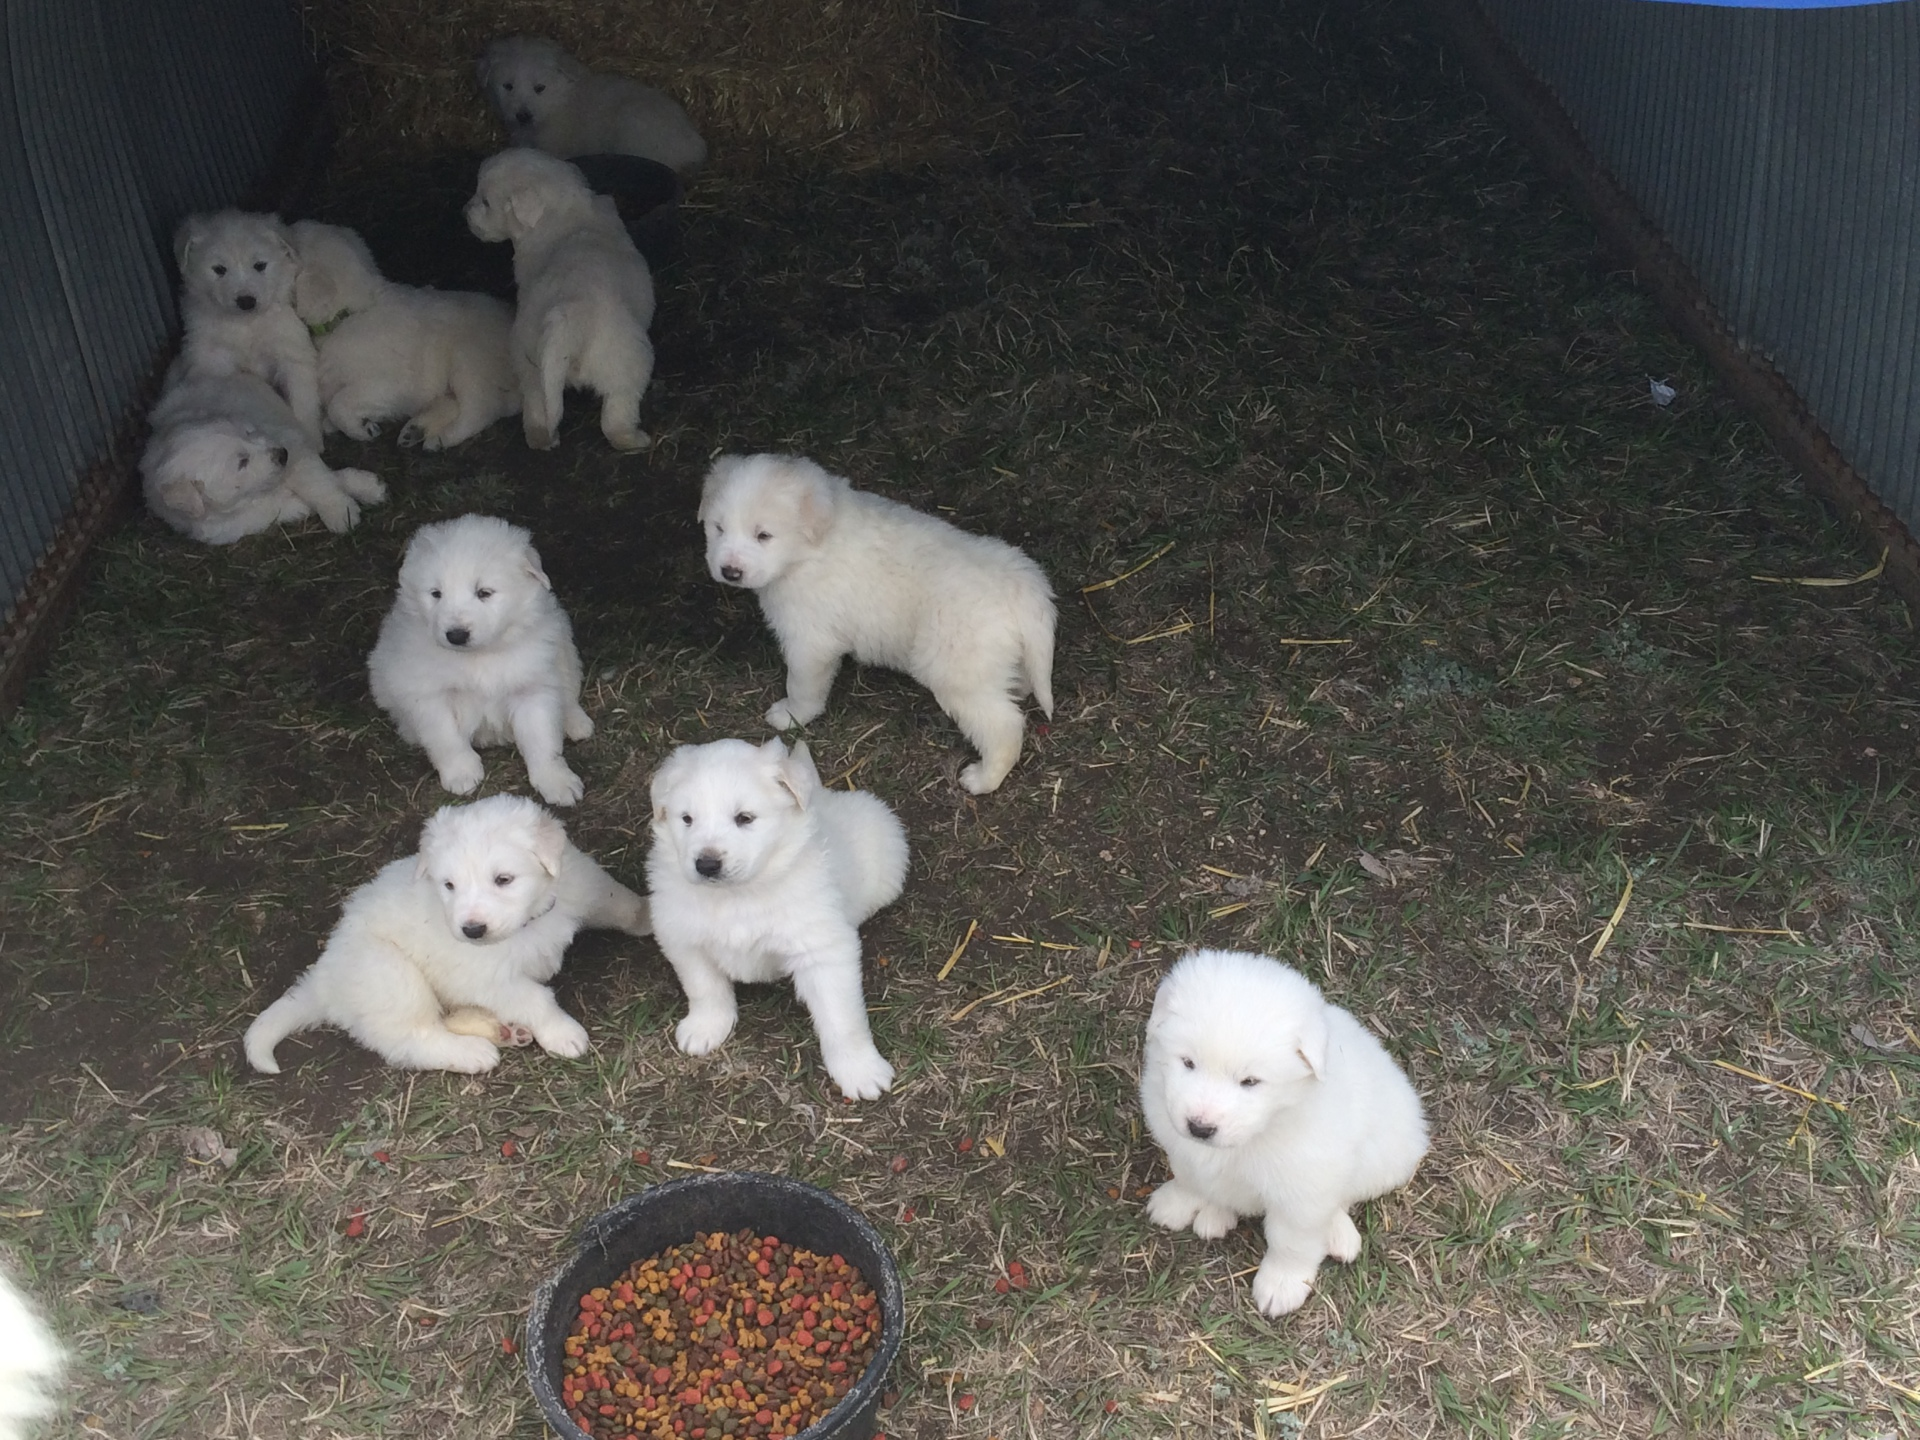 Lil's puppies at 4 1/2 weeks